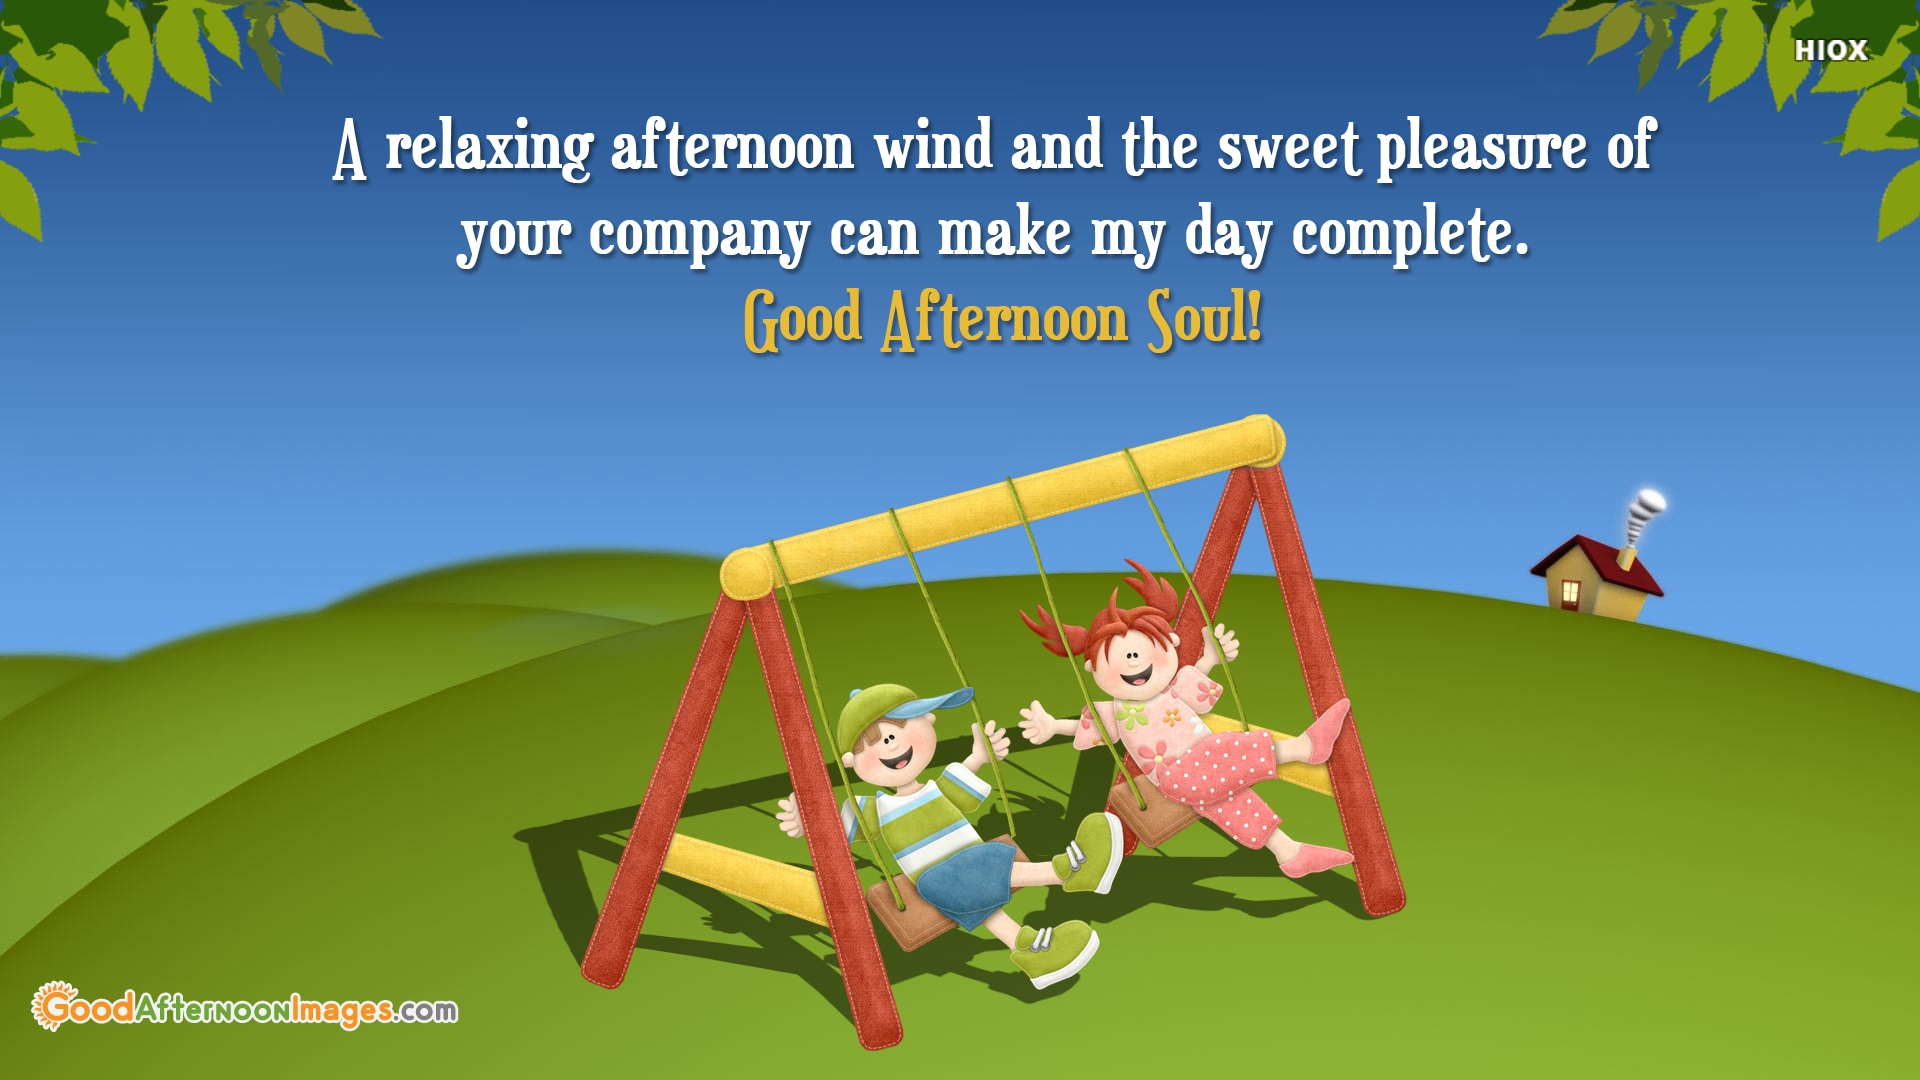 A Relaxing Afternoon Wind and The Sweet Pleasure Of Your Company Can Make My Day Complete. Good Afternoon Soul!